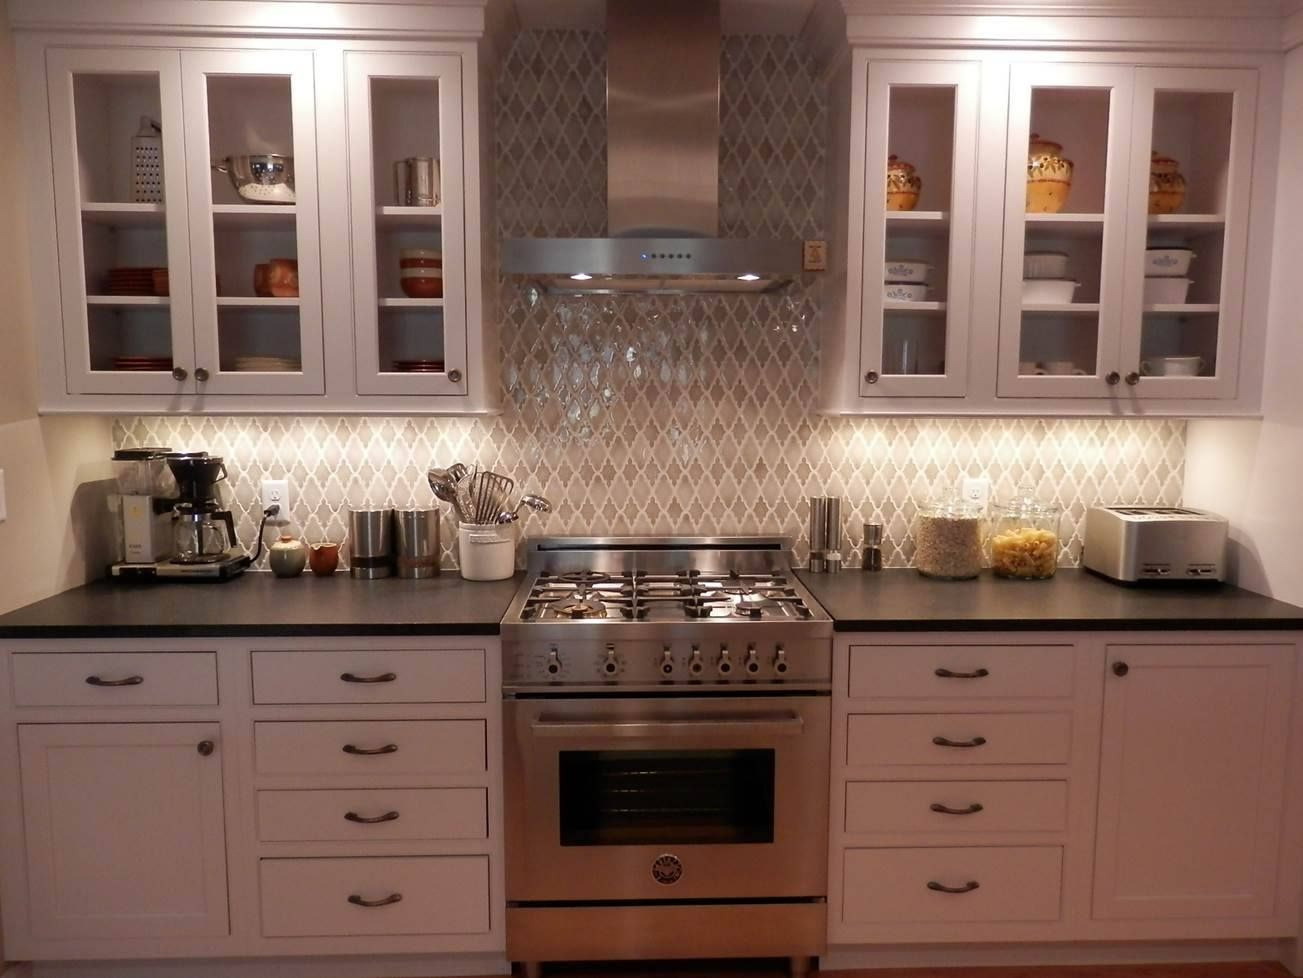 Rustic Kitchen Hingham Menu Encore Ceramics Arabesque Mosaic Kitchen Backsplash Hand Glazed